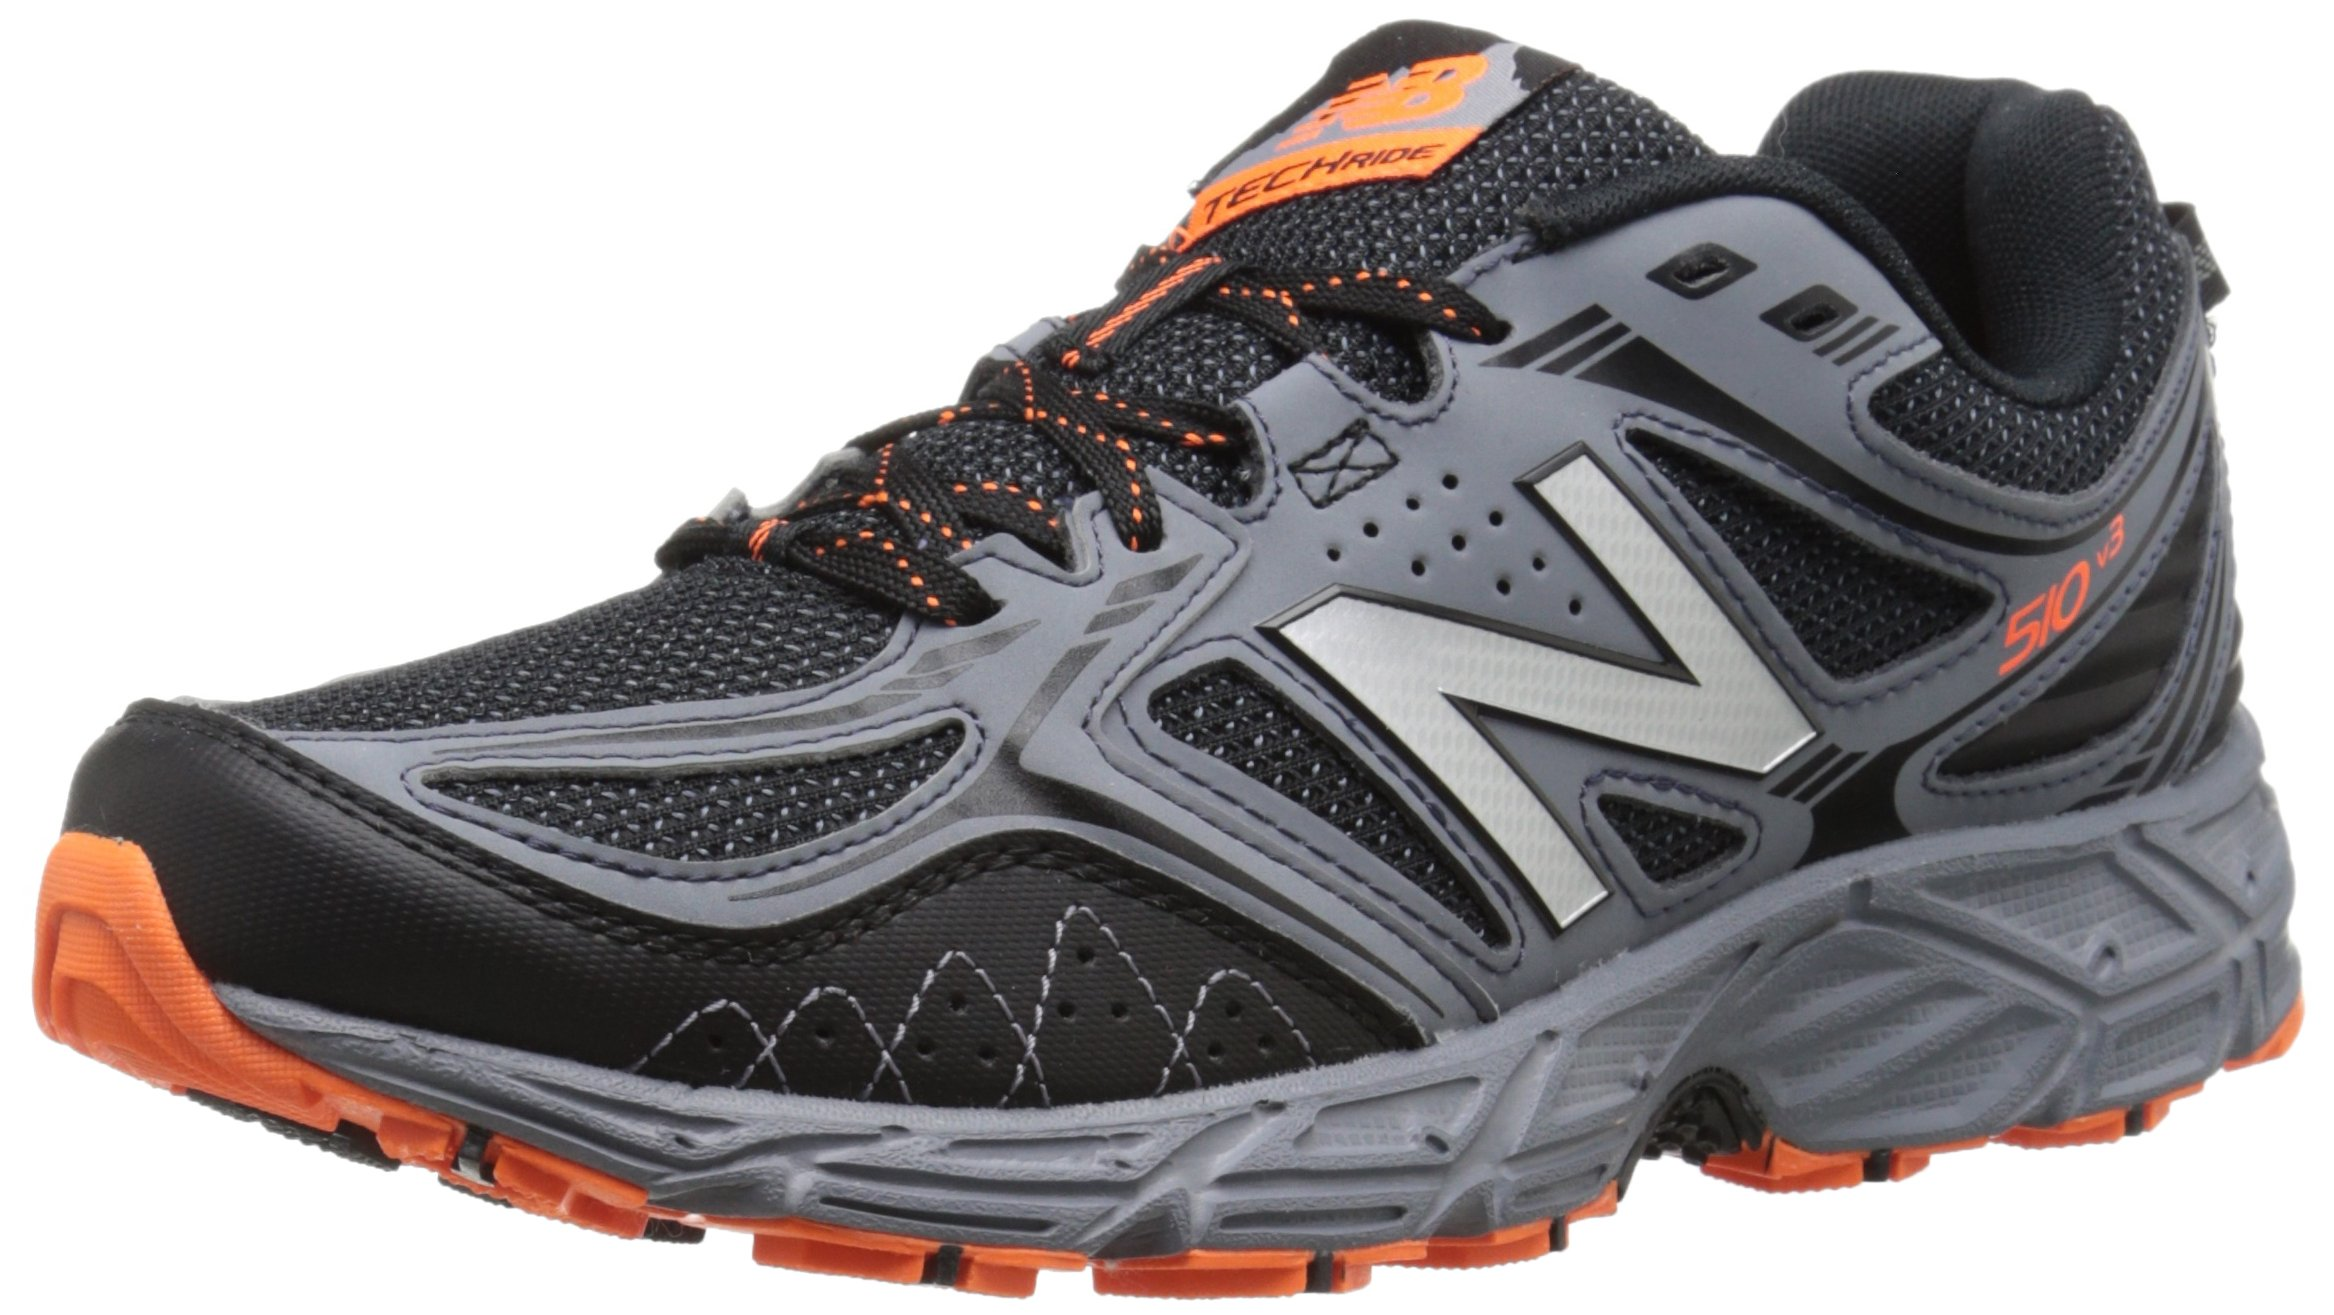 New Balance Men's 510v3 Trail Running Shoe, Black/Grey, 12 4E US by New Balance